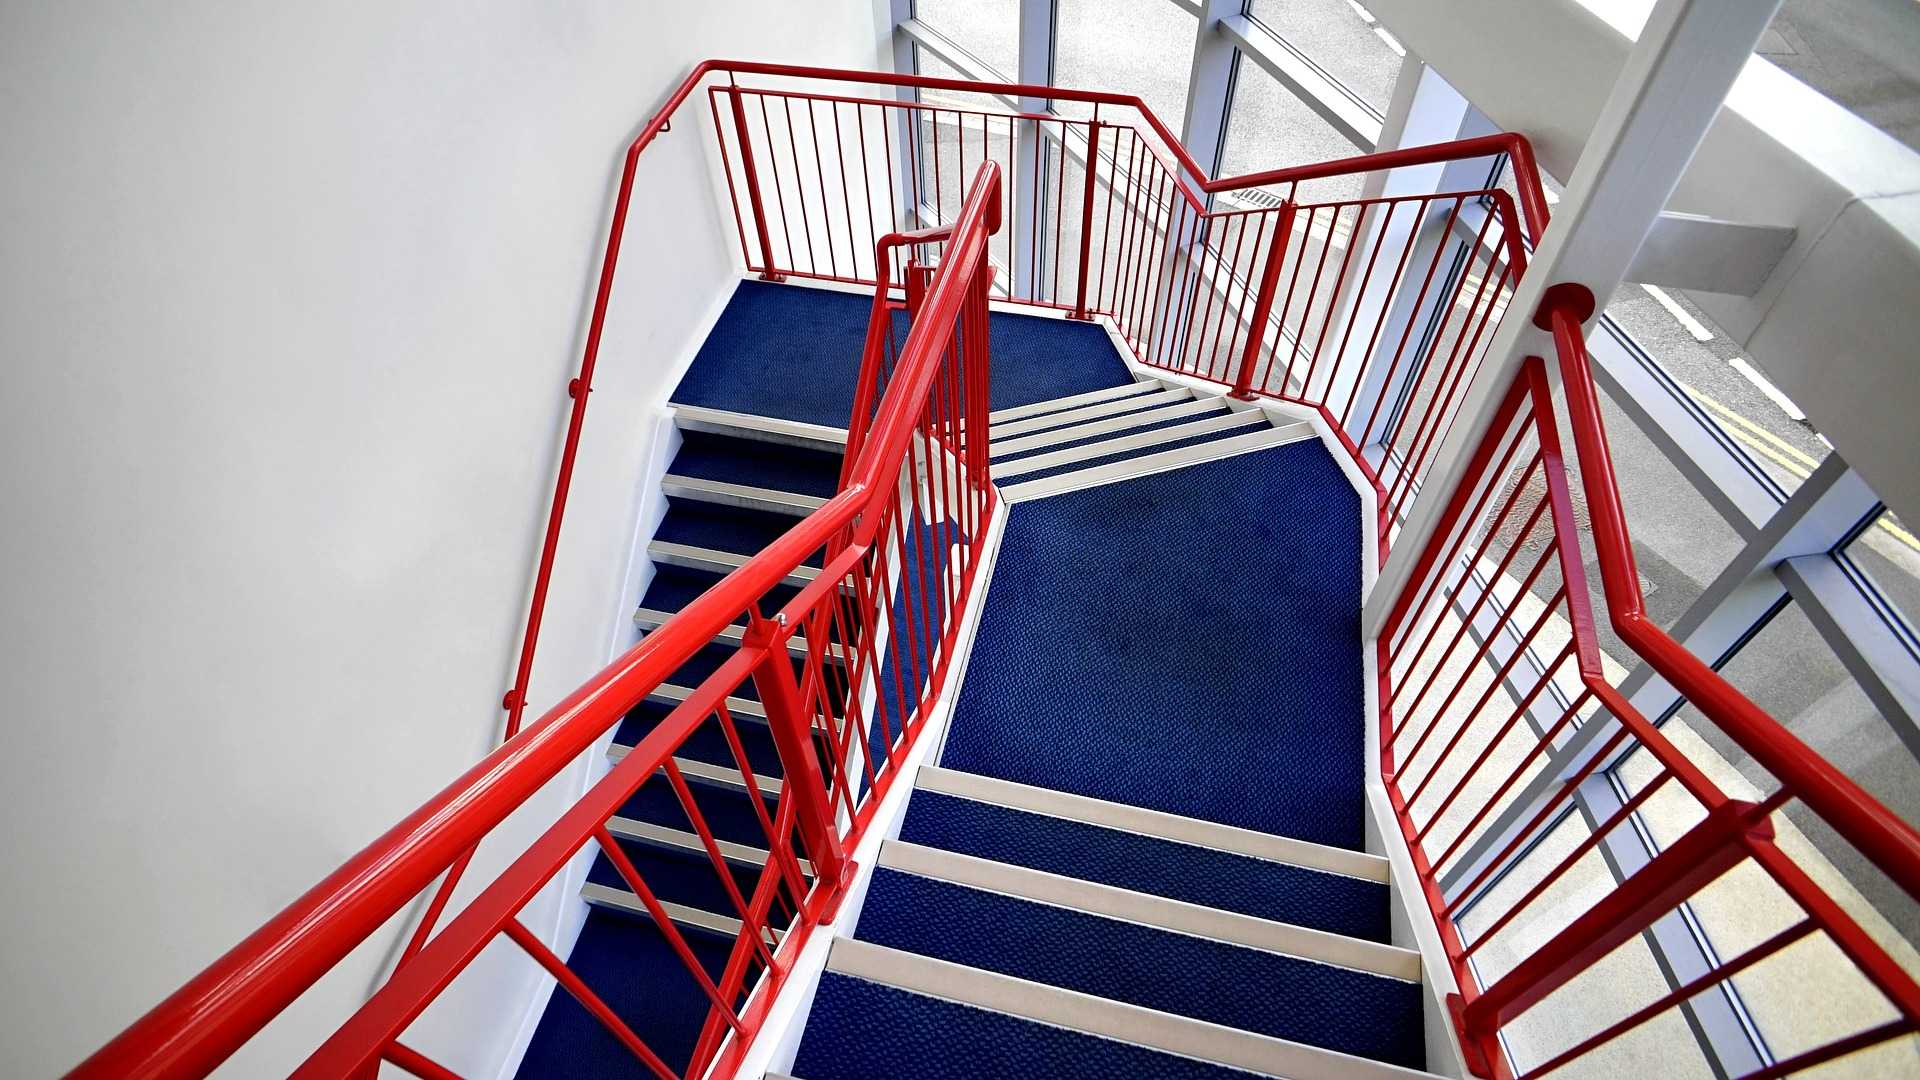 Ensure stairways are in good condition